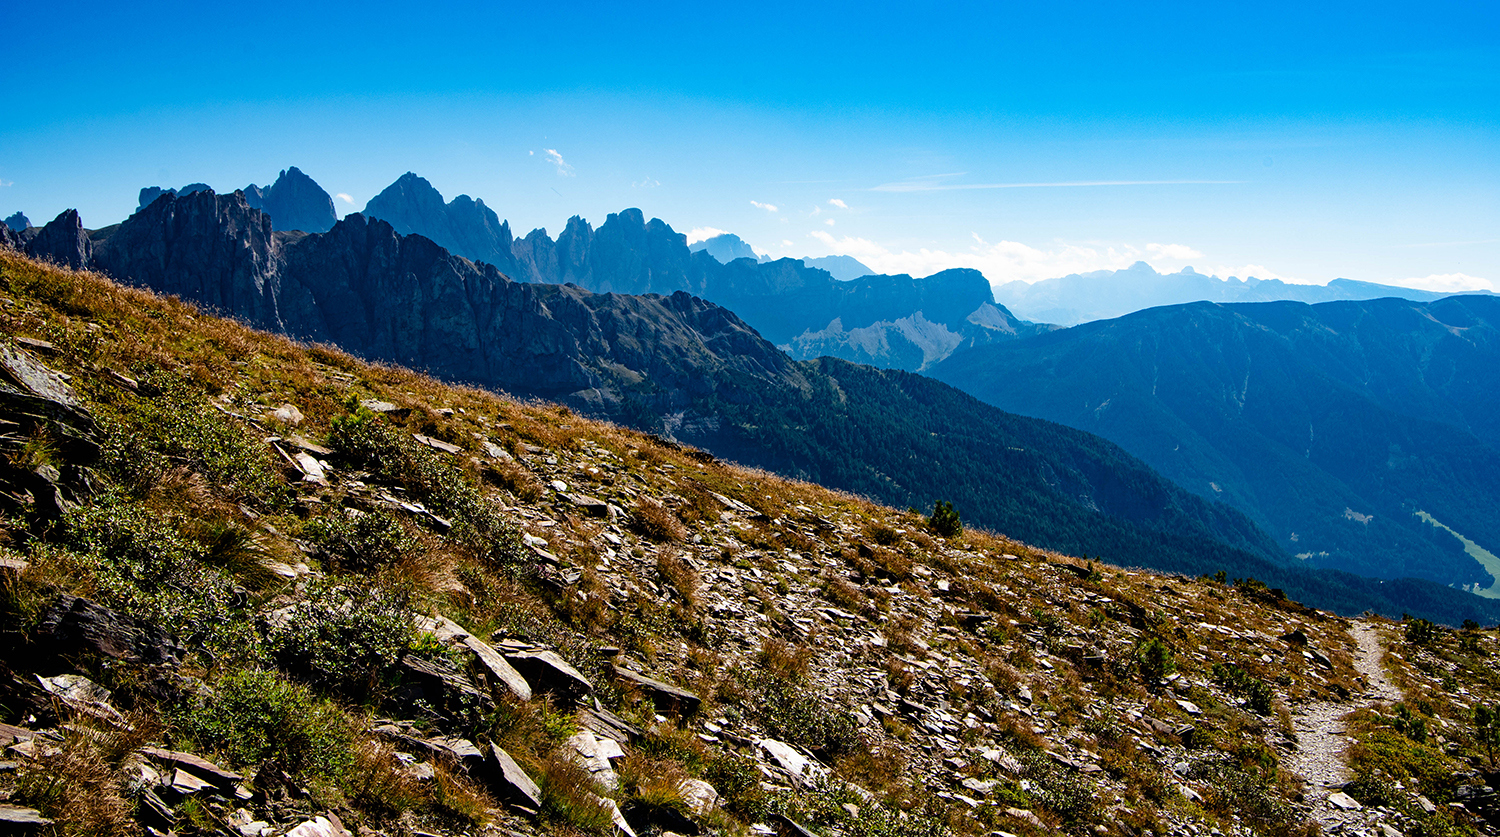 <p>From a narrow trail, a view southward toward the Odle group of peaks and beyond.</p>